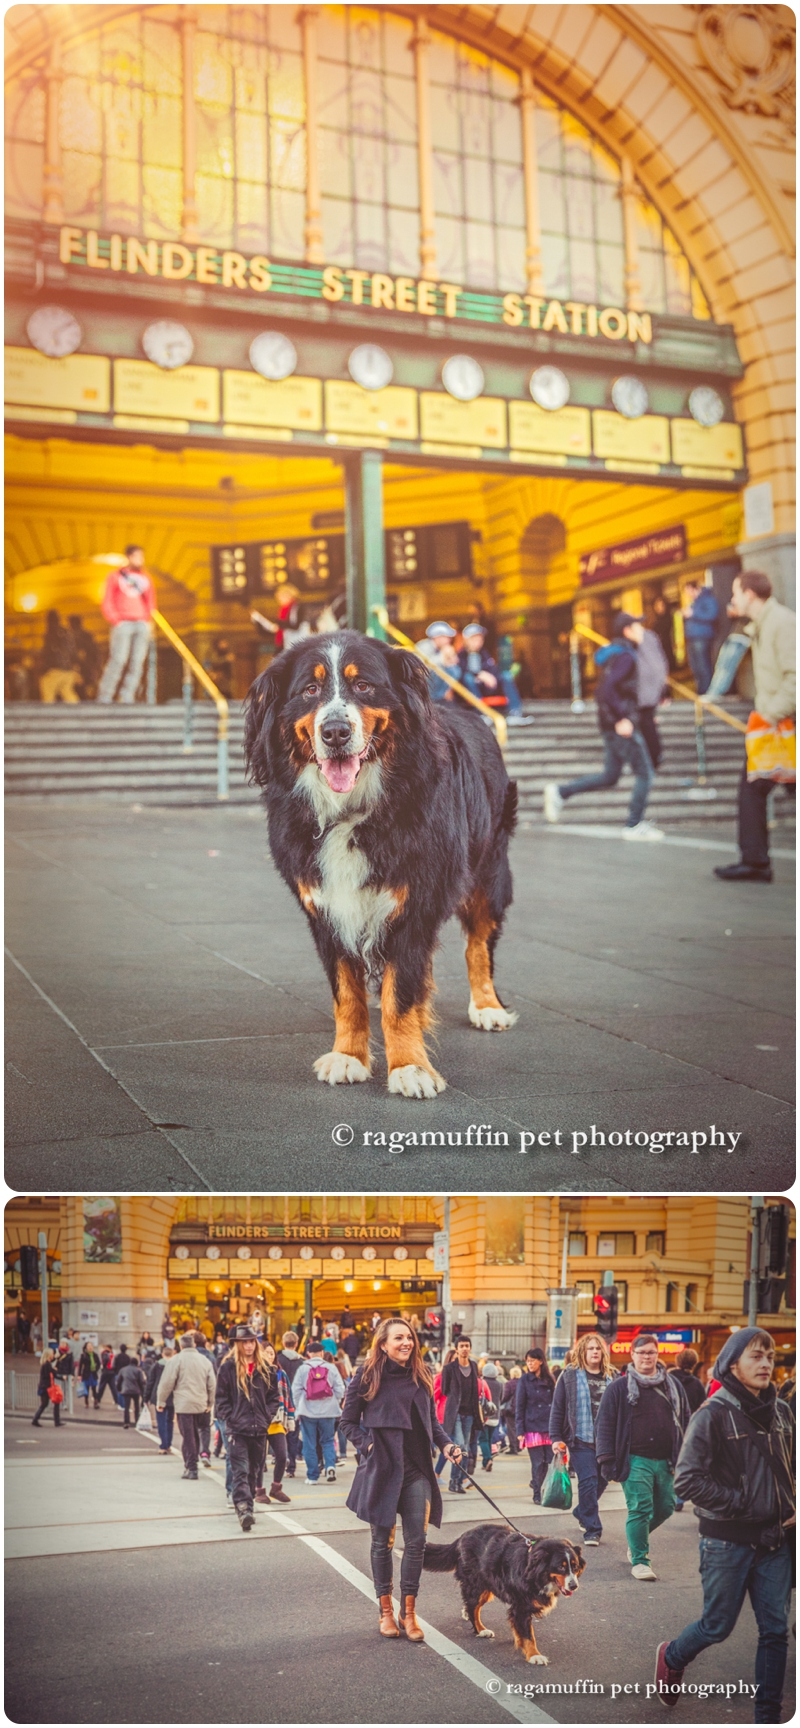 Dog at Flinders Street Station, Melbourne